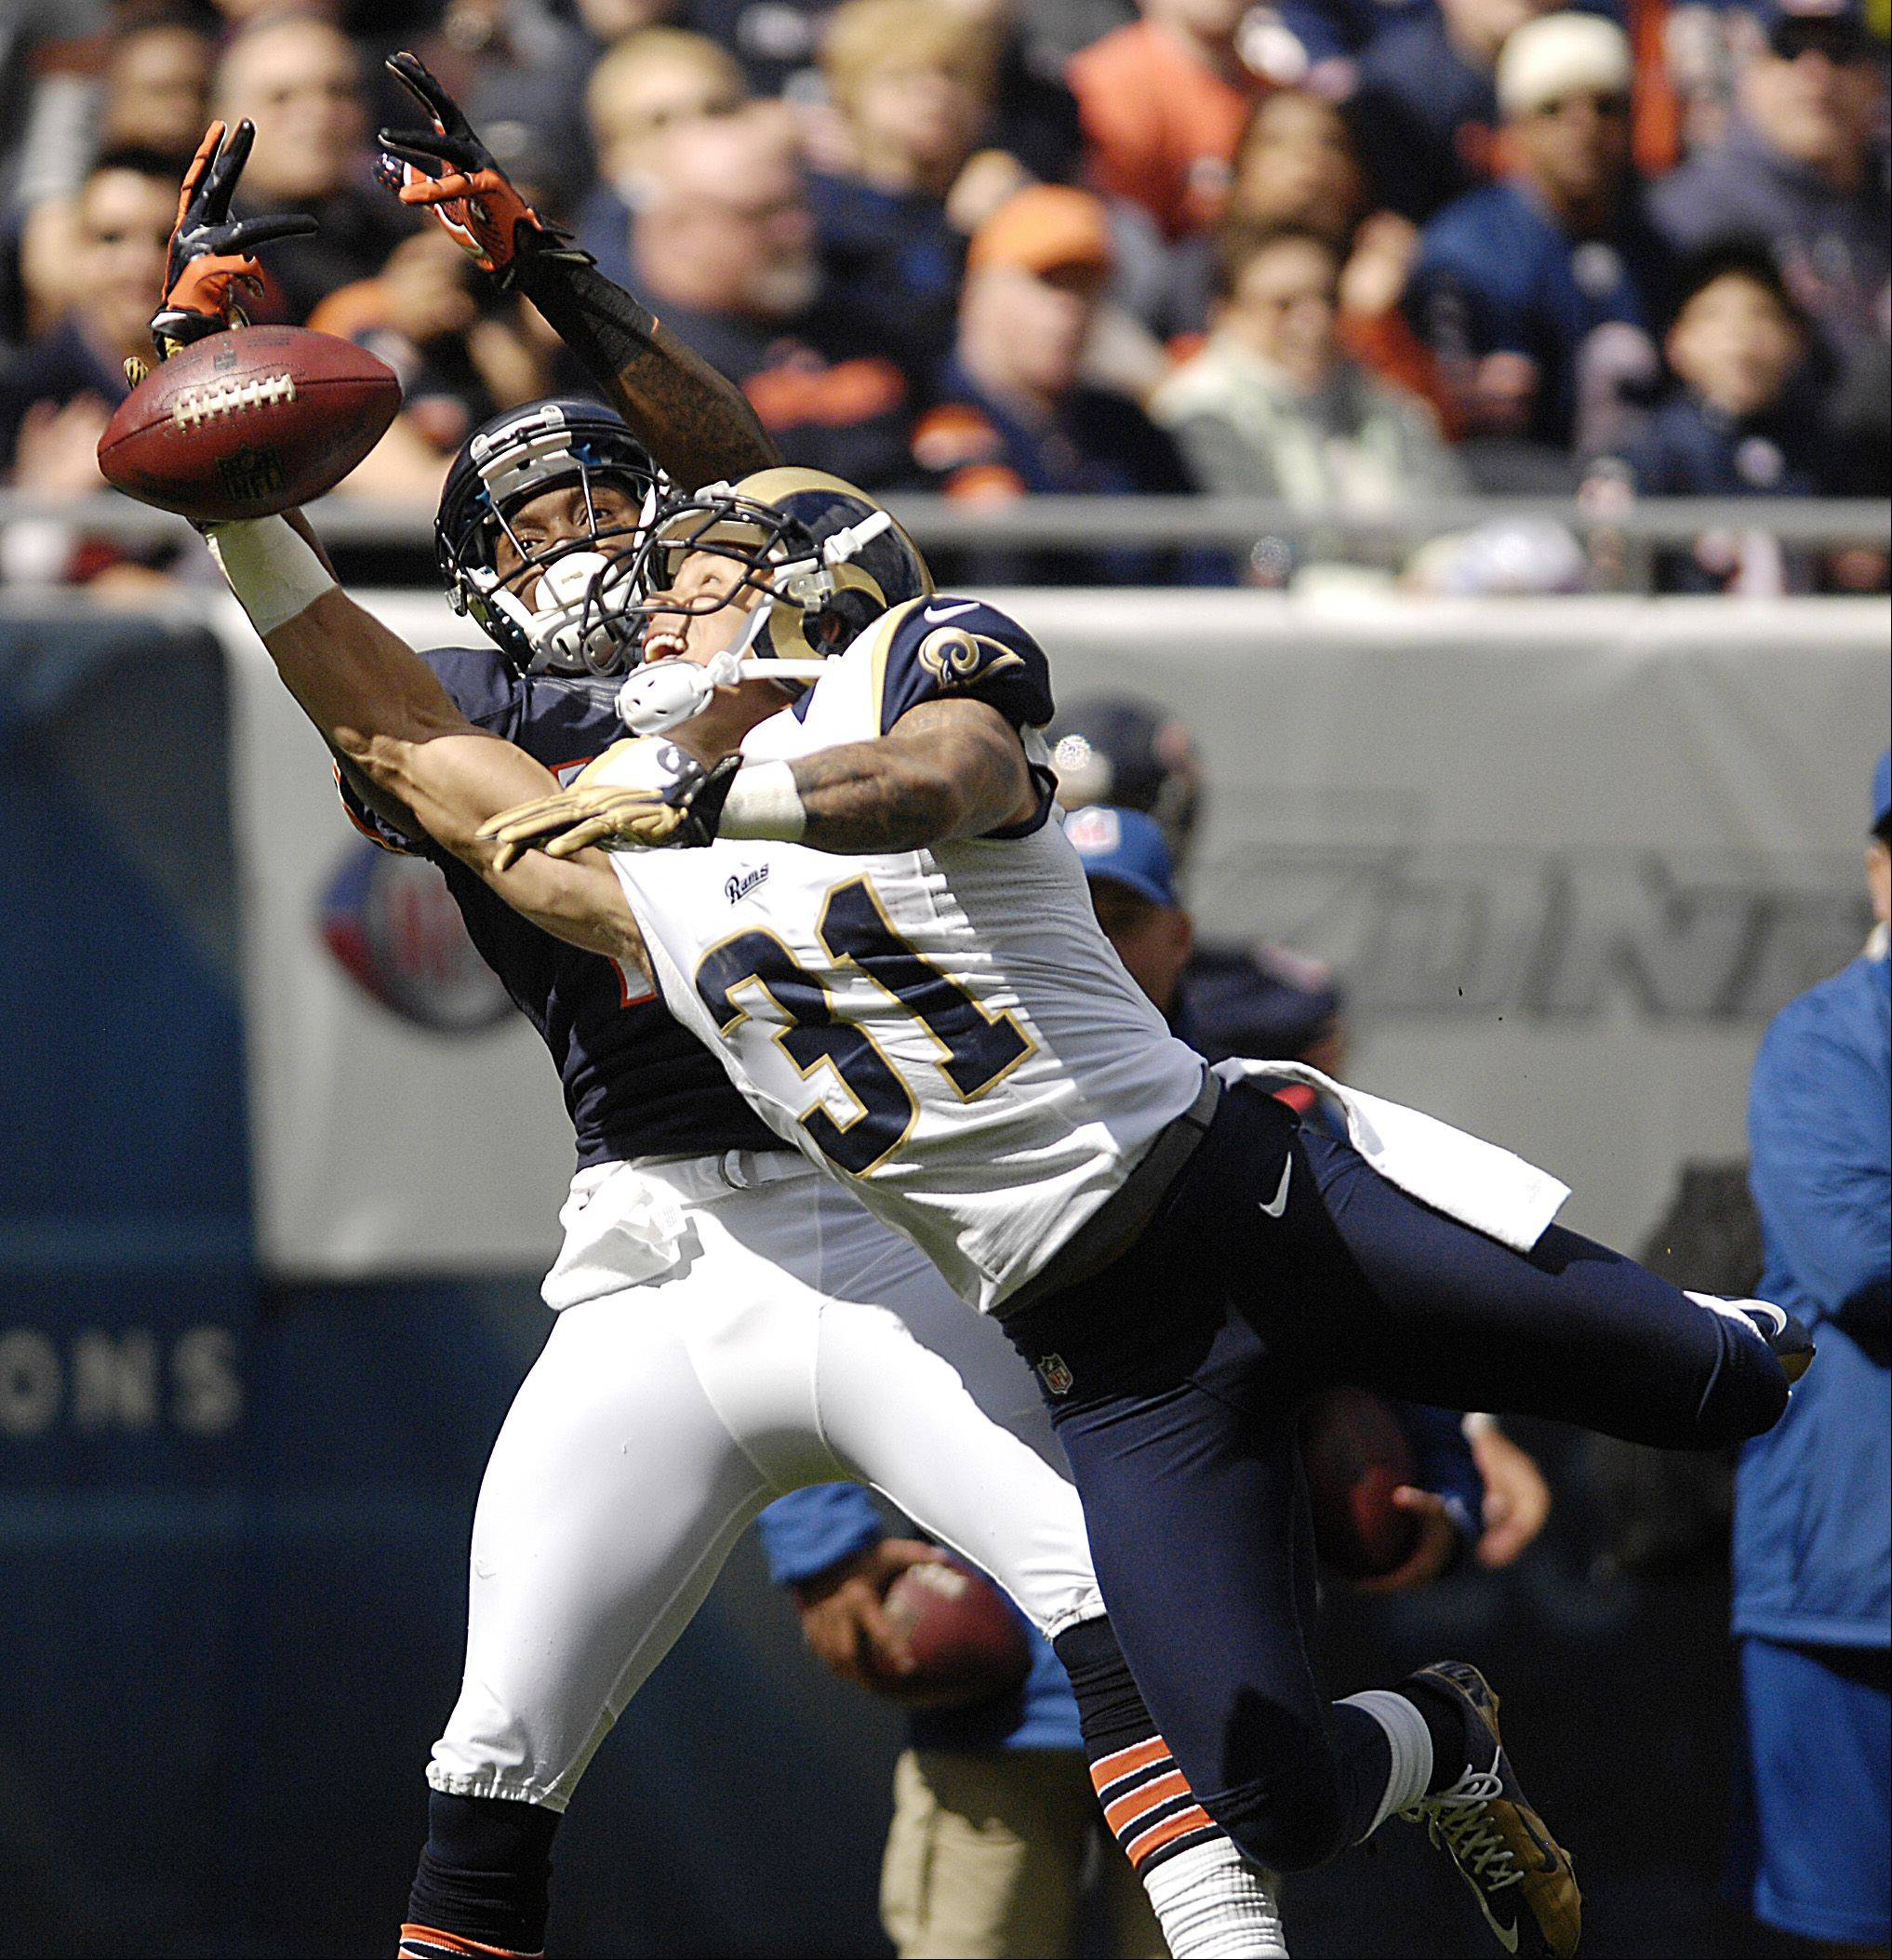 A pass intended for Chicago Bears wide receiver Alshon Jeffery is deflected by St. Louis Rams cornerback Cortland Finnegan during the Bears 23-6 win at Soldier Field in Chicago.